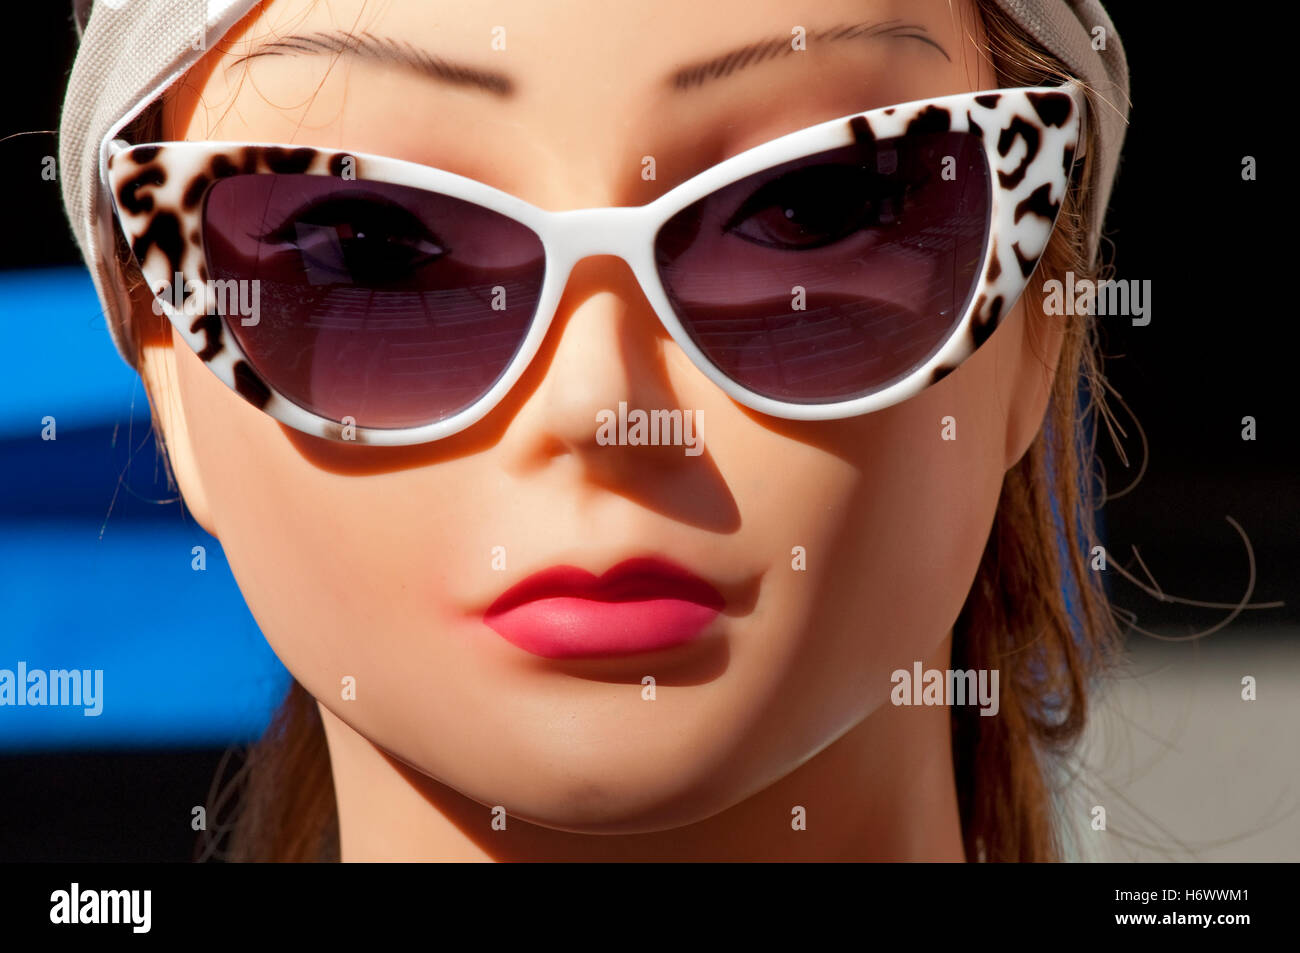 Mannequin with Eyeglasses - Stock Image